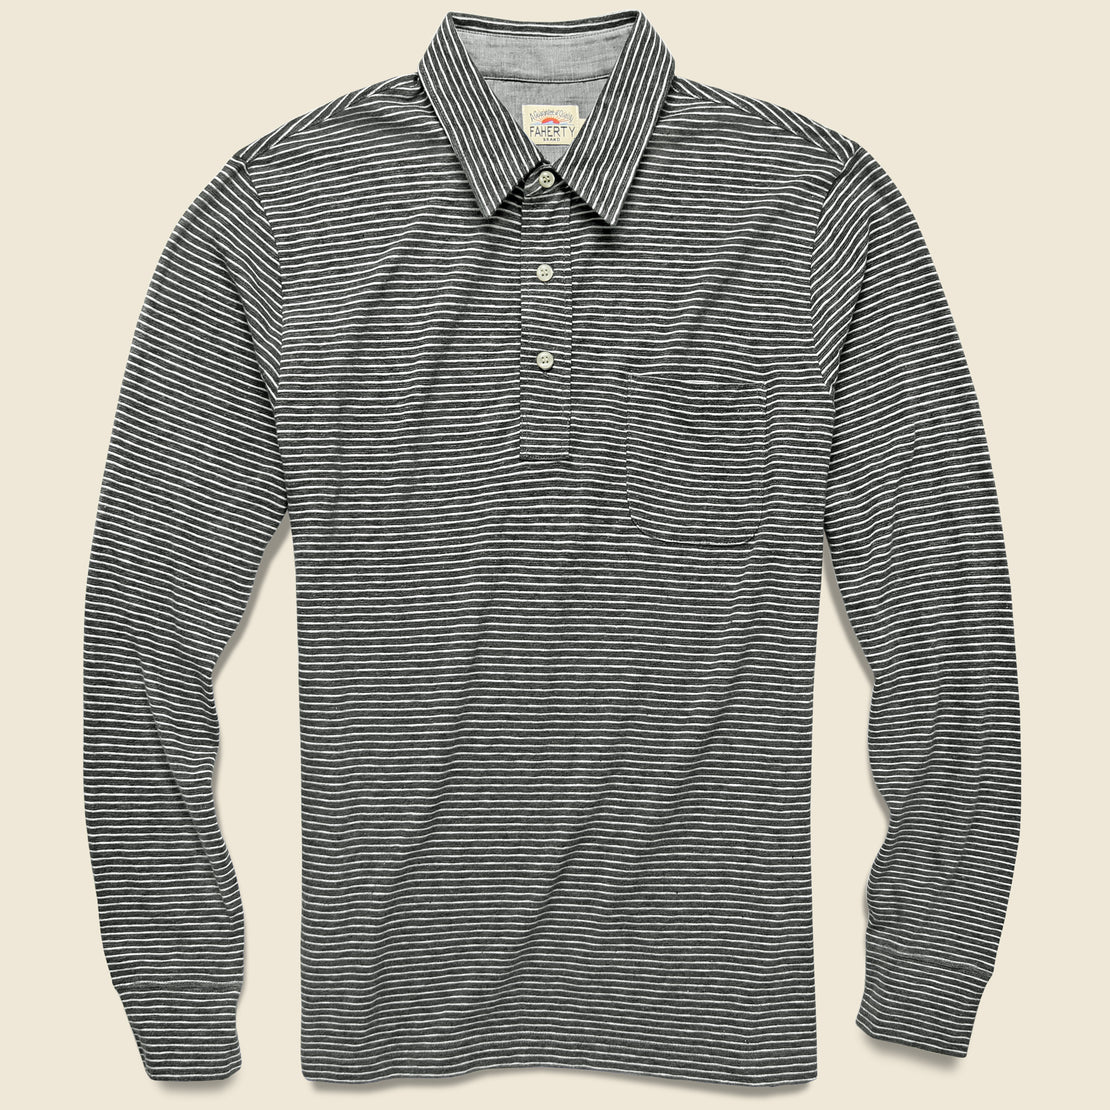 Faherty Luxe Heather Polo - Charcoal Grey Stripe